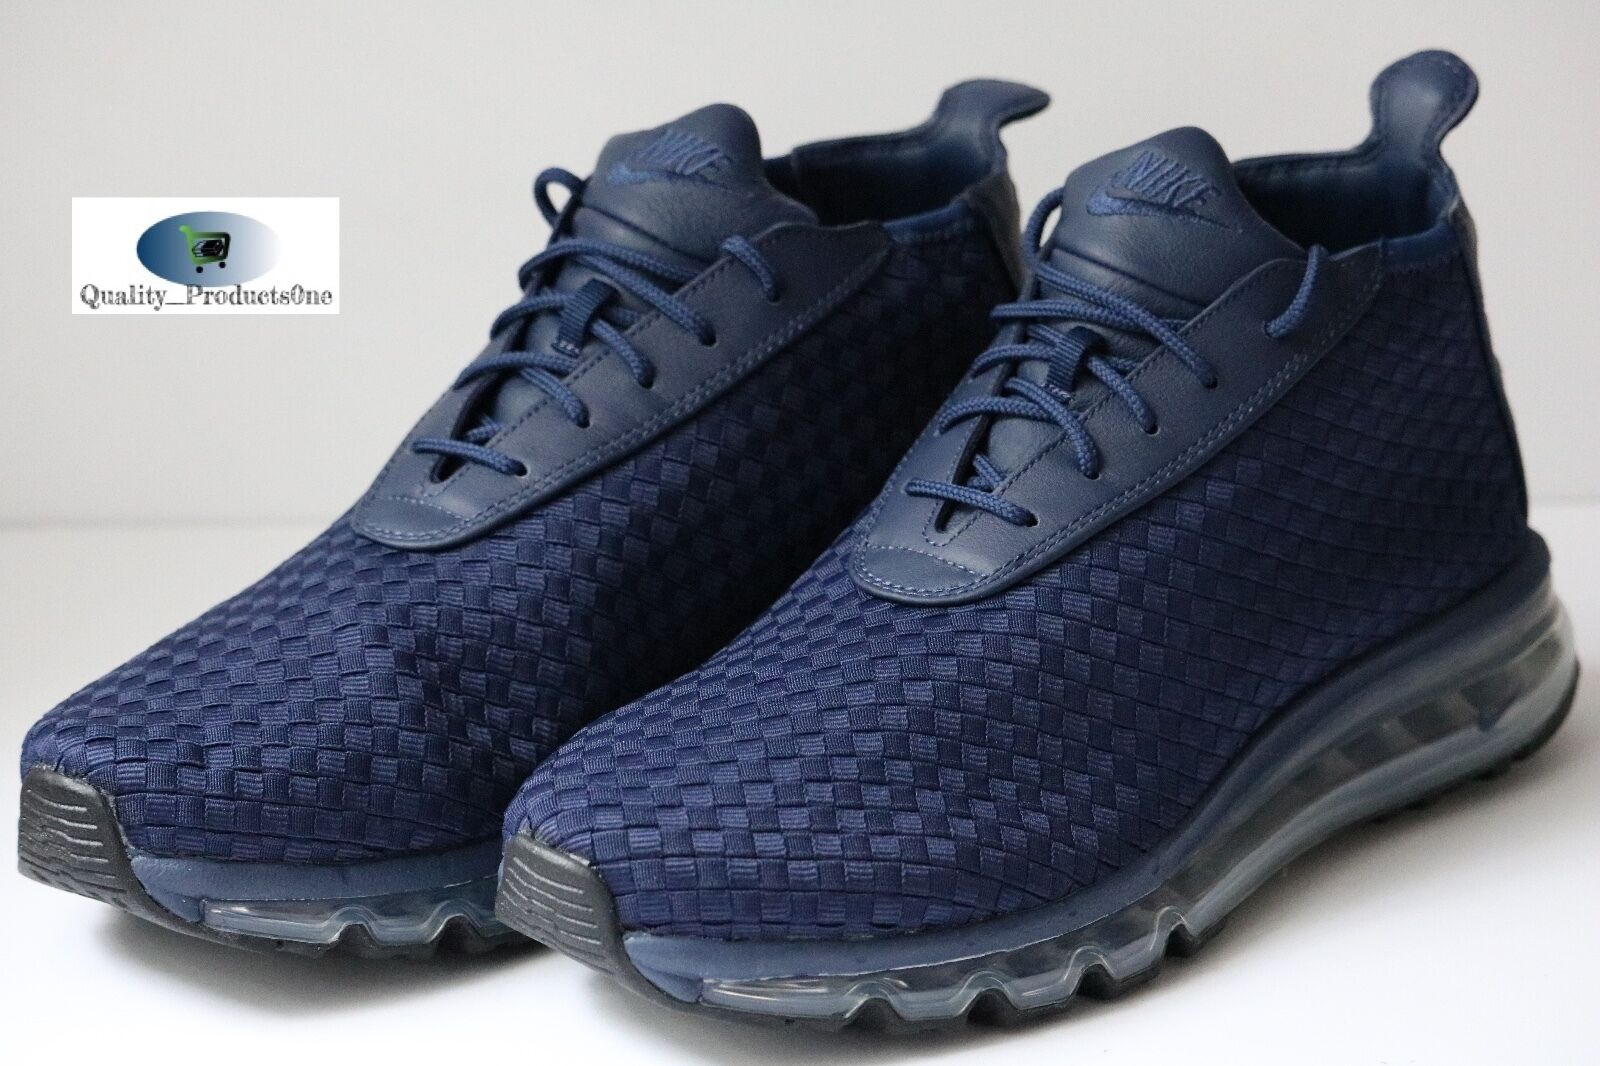 Nike Mens Air Max Woven Boot Navy 921854 400 Size 10